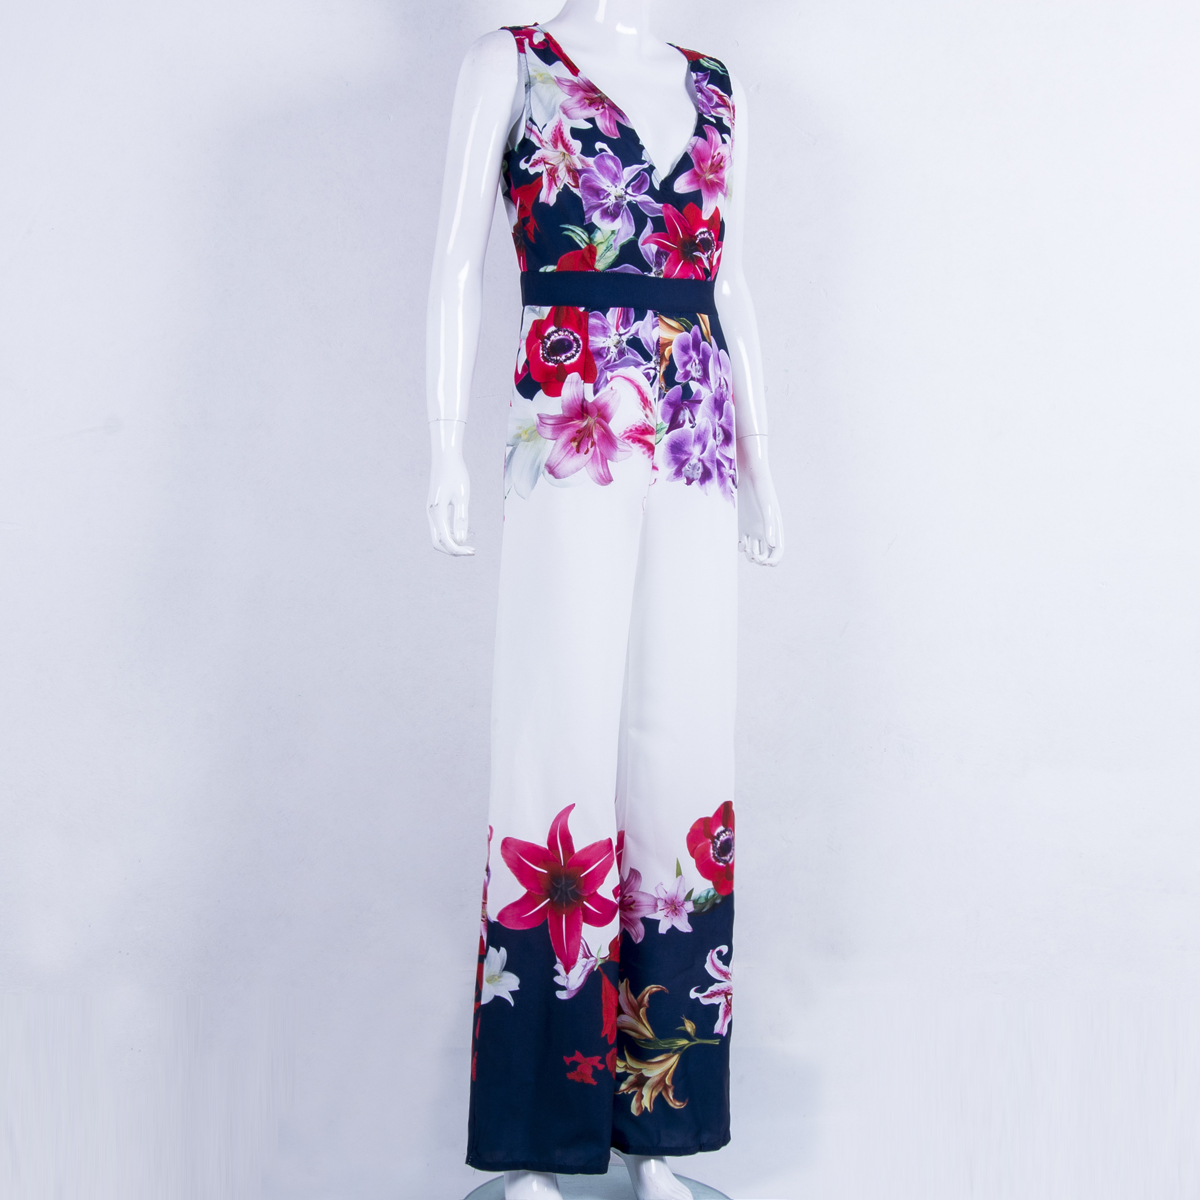 New Women Playsuit Sexy V-neck Floral Jumpsuit Sexy Lady Clubwear Flower Summer Playsuit Wide Leg Party Jumpsuit Romper #3